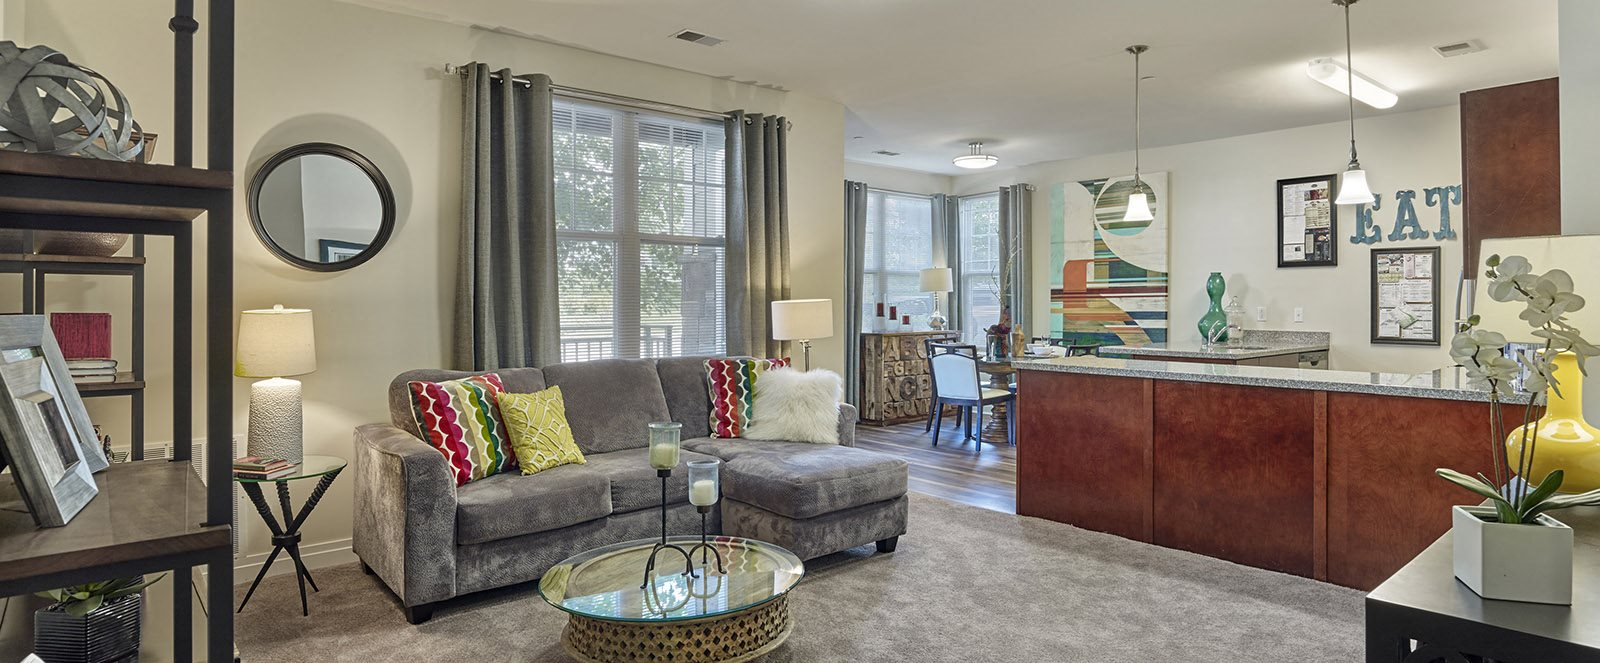 The Best Luxury Apartments in Pittsburgh, PA for Rent